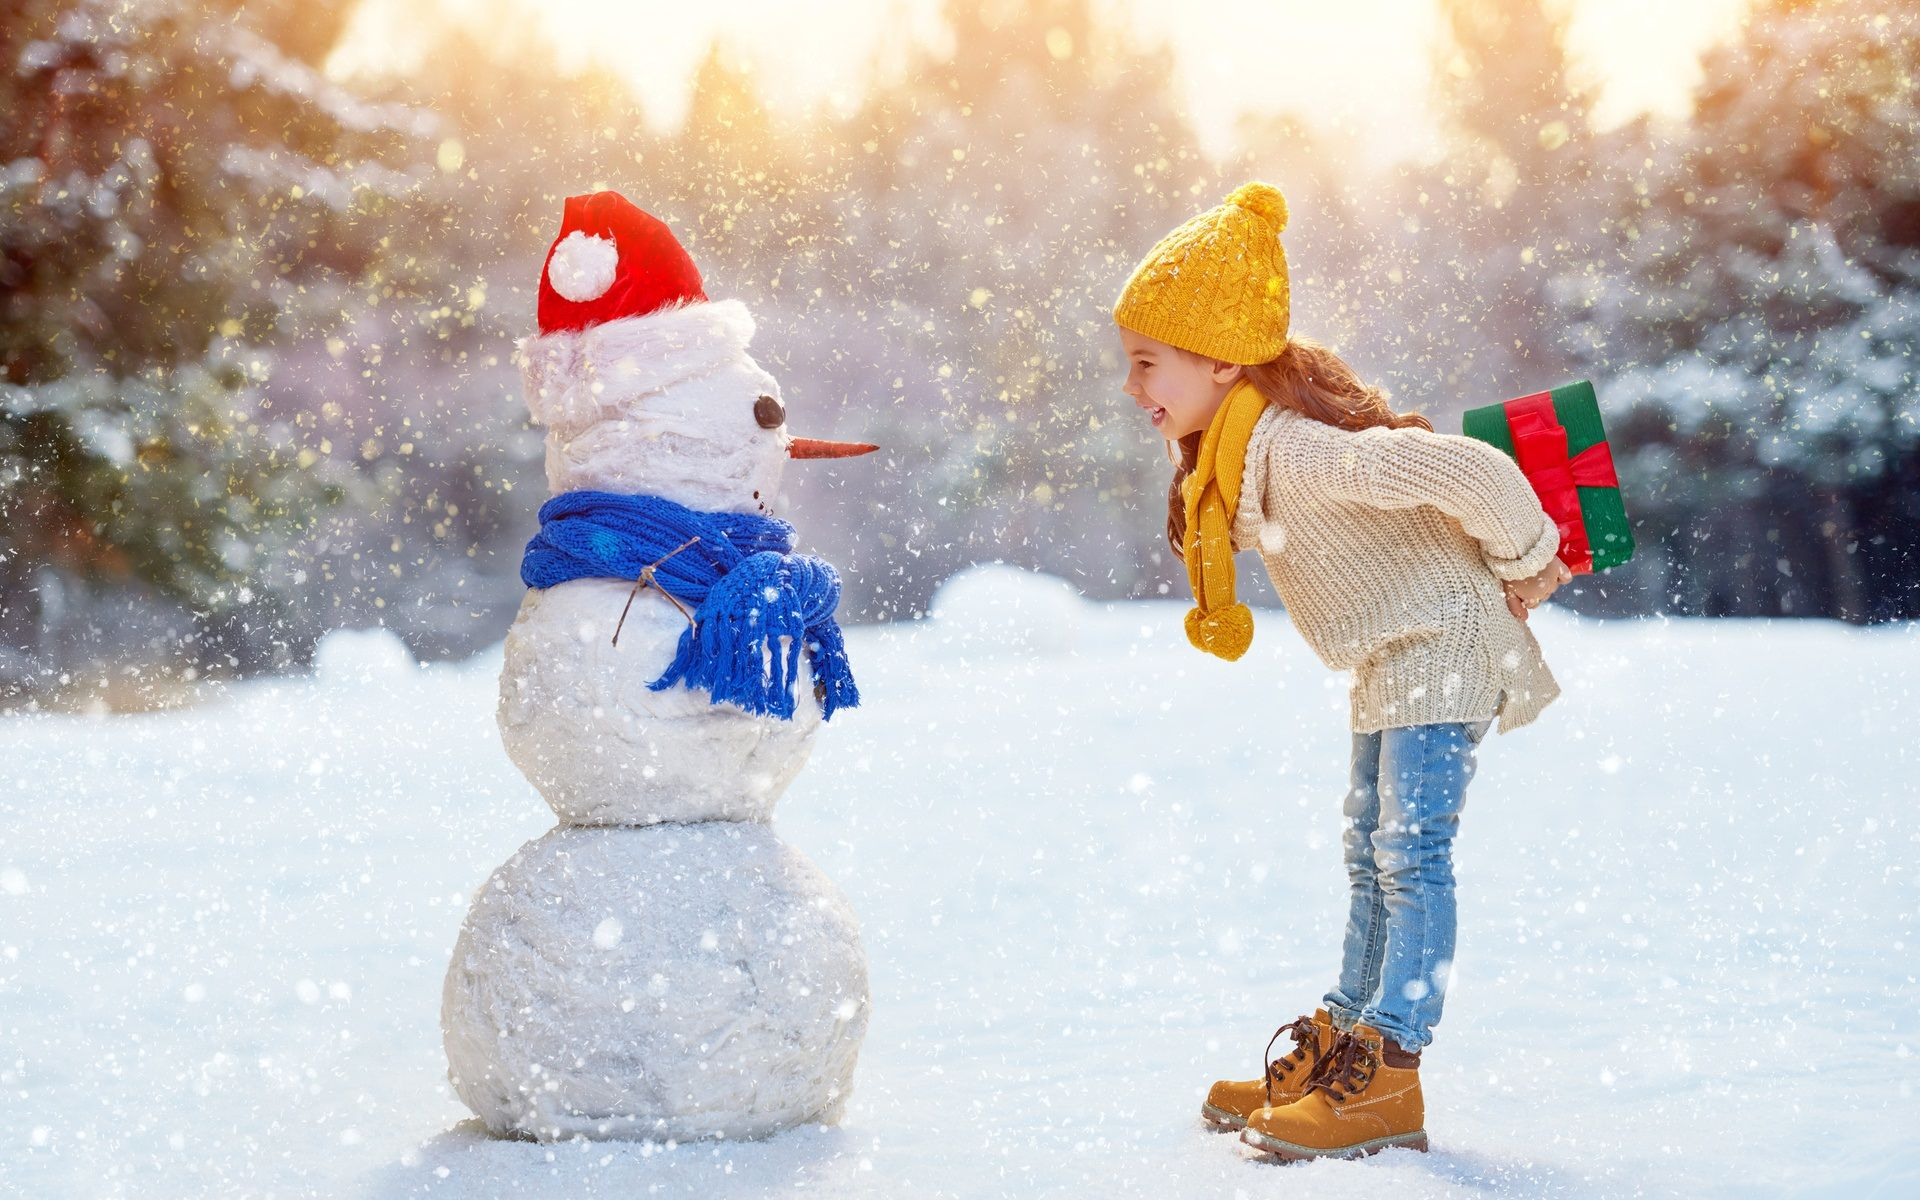 snowman photos in hd